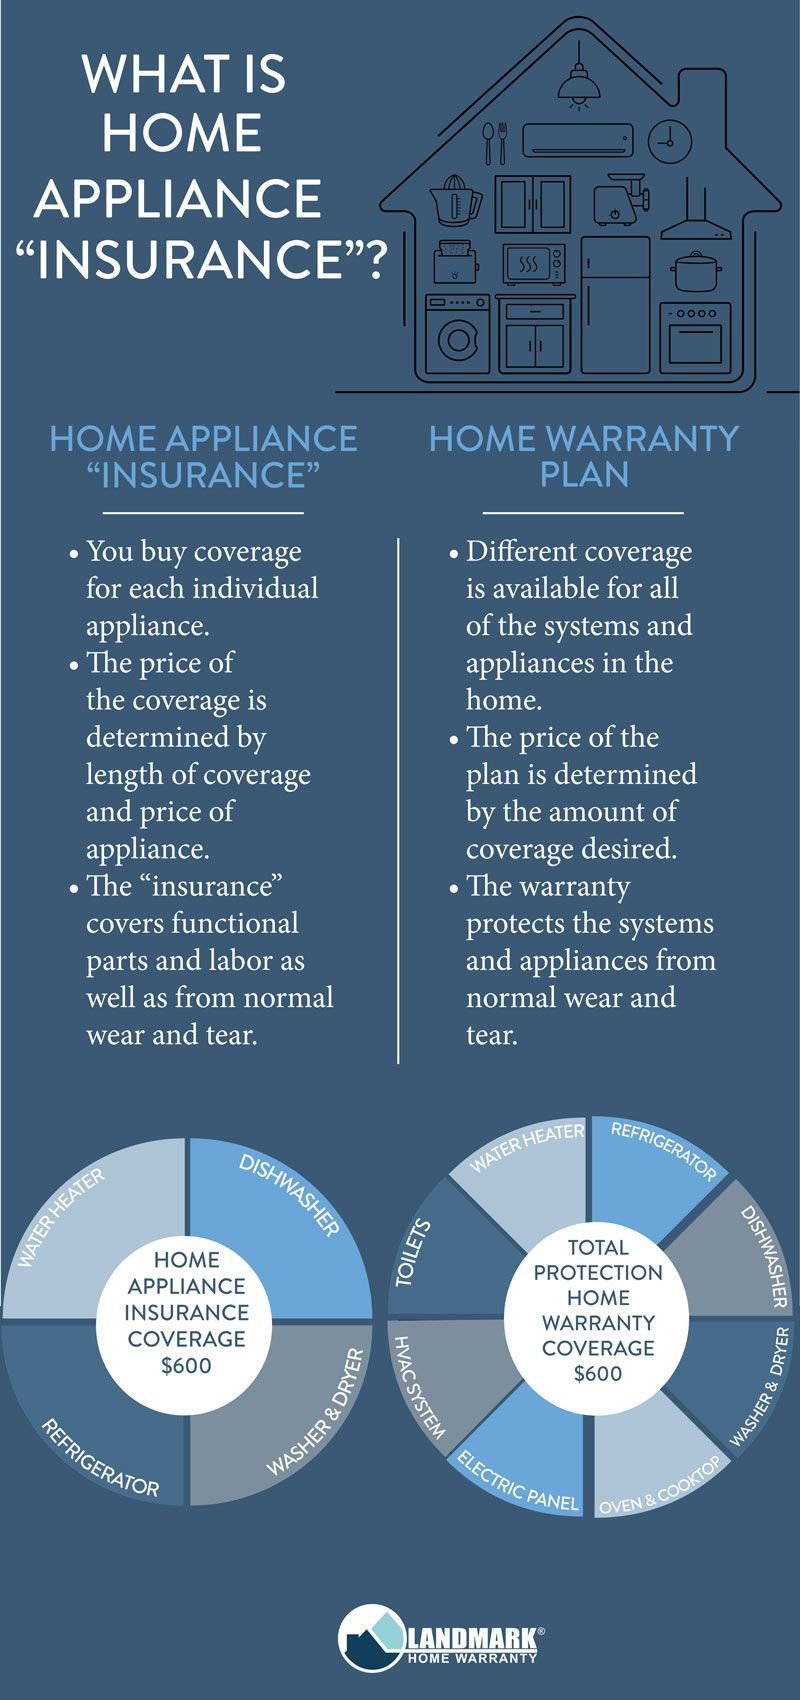 Having A Home Warranty Will Get You More Coverage For Your Money